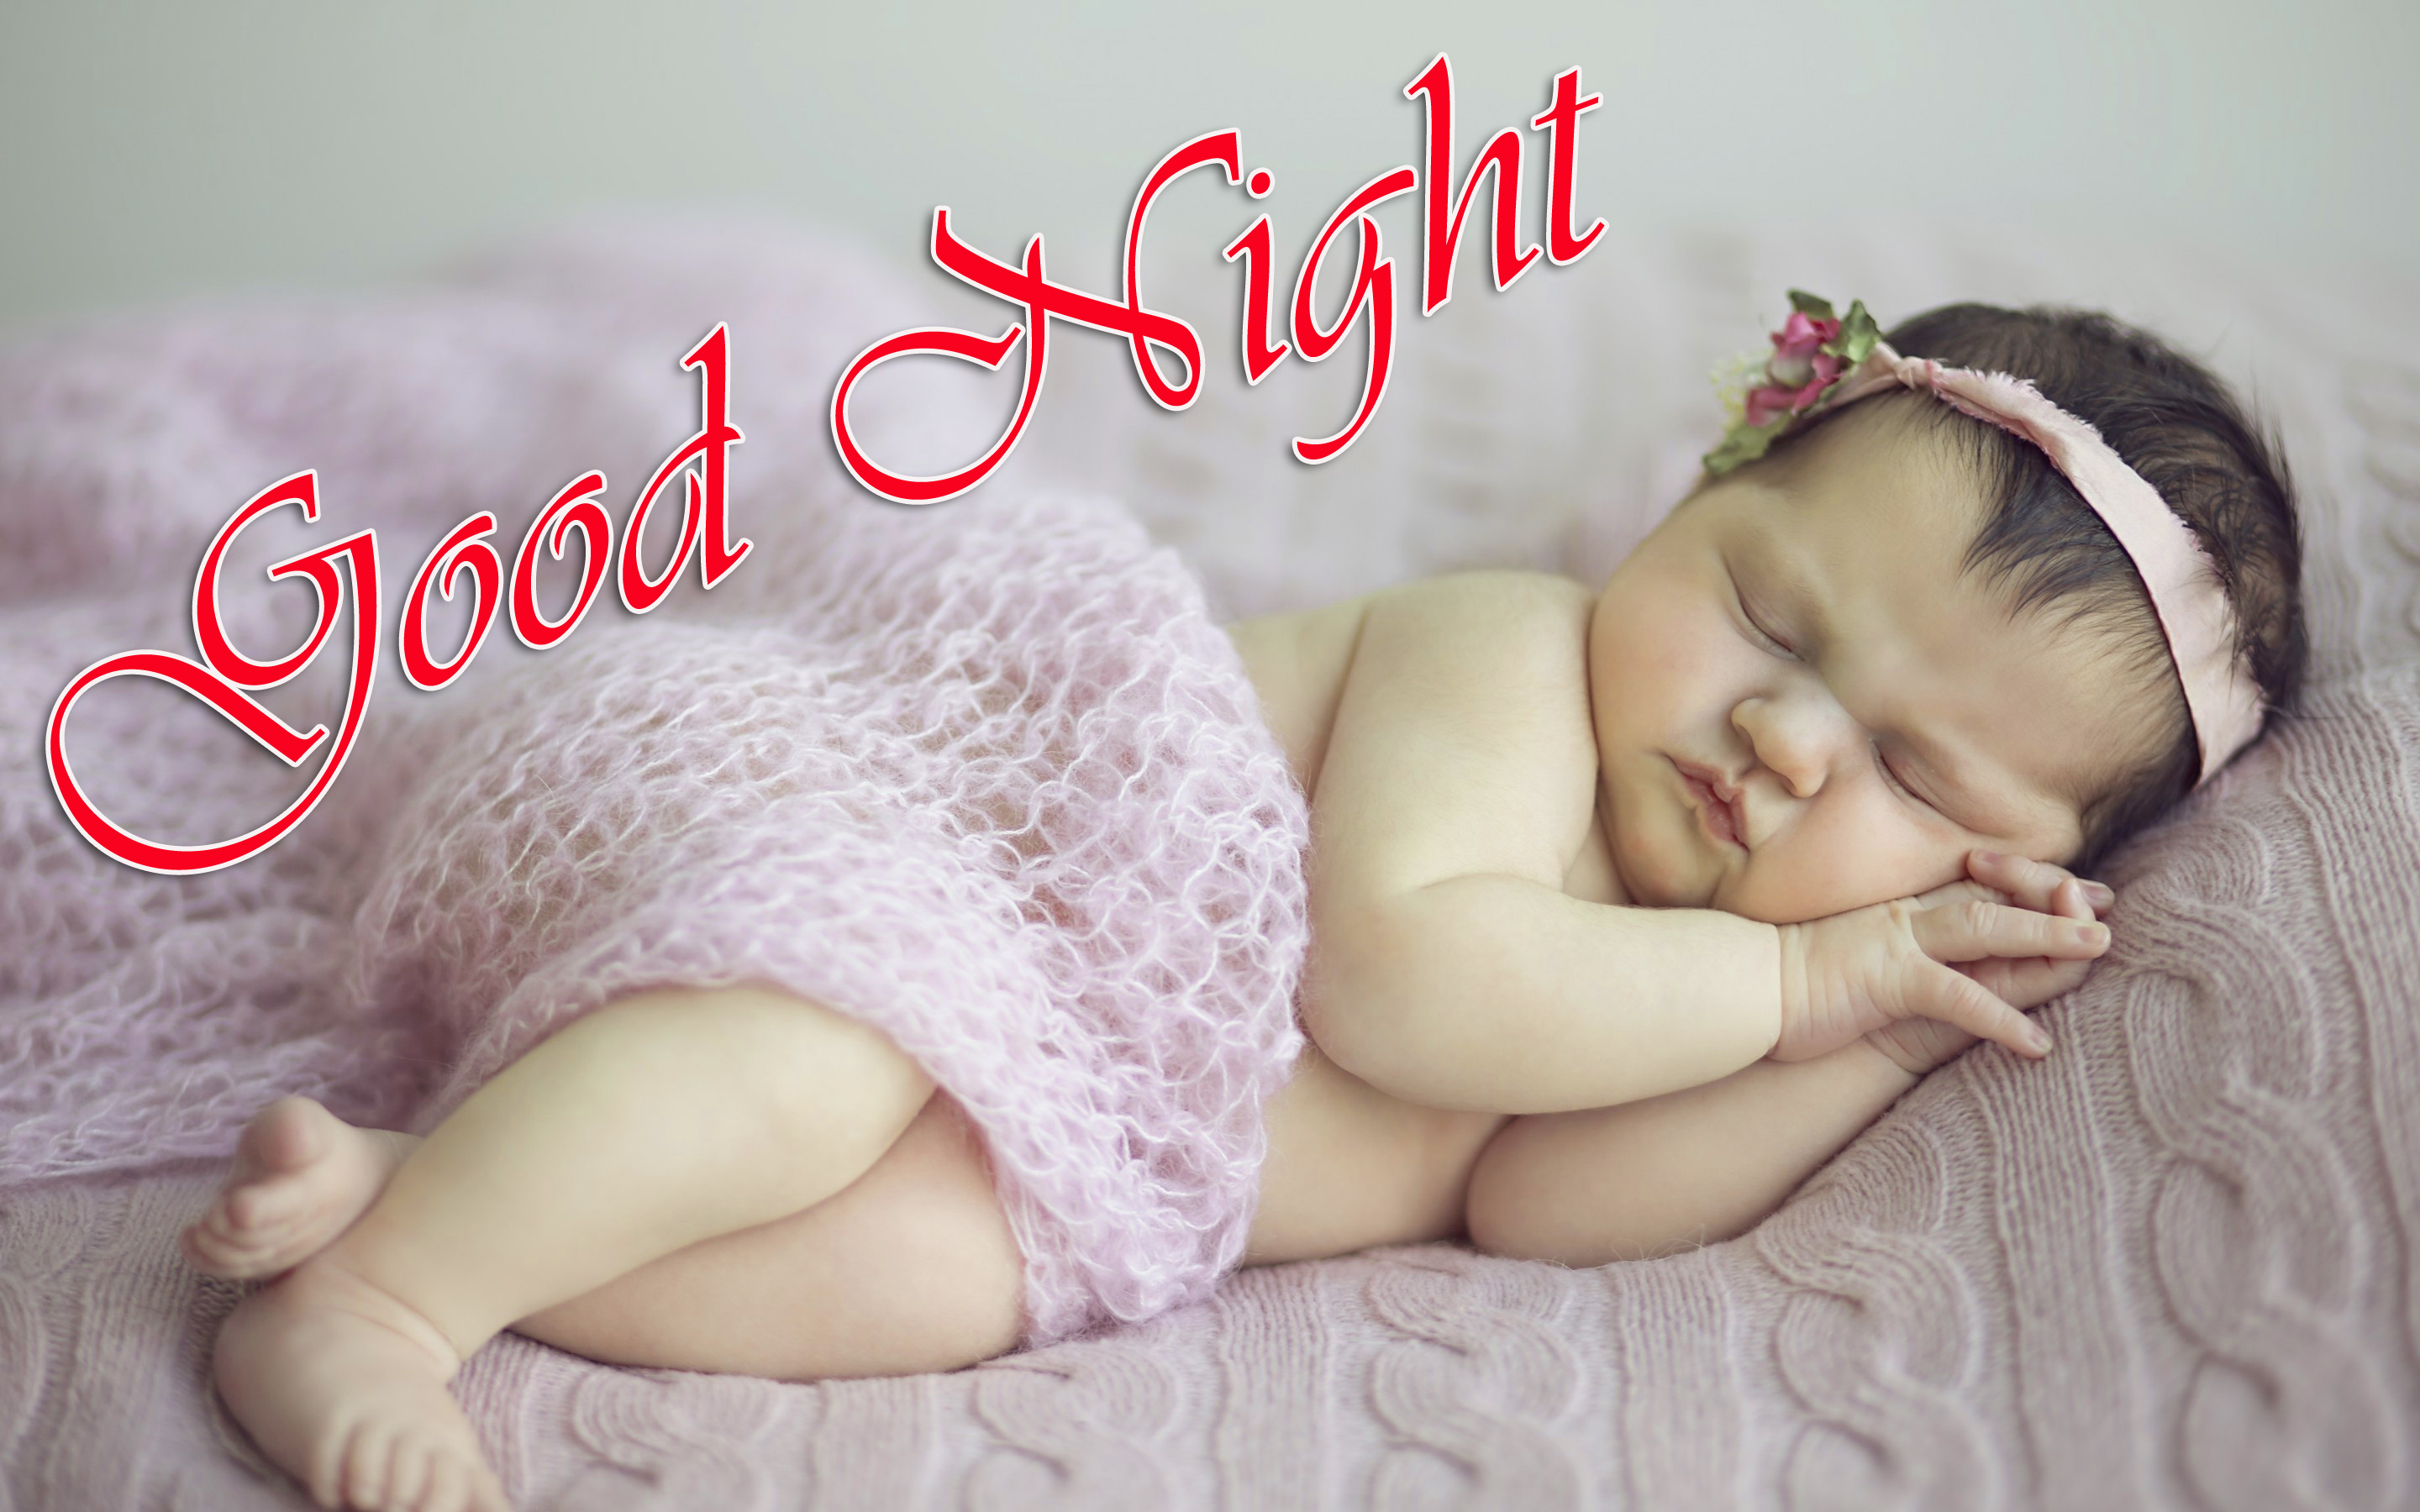 Good Night Pics Wallpaper Download Here for Facebook